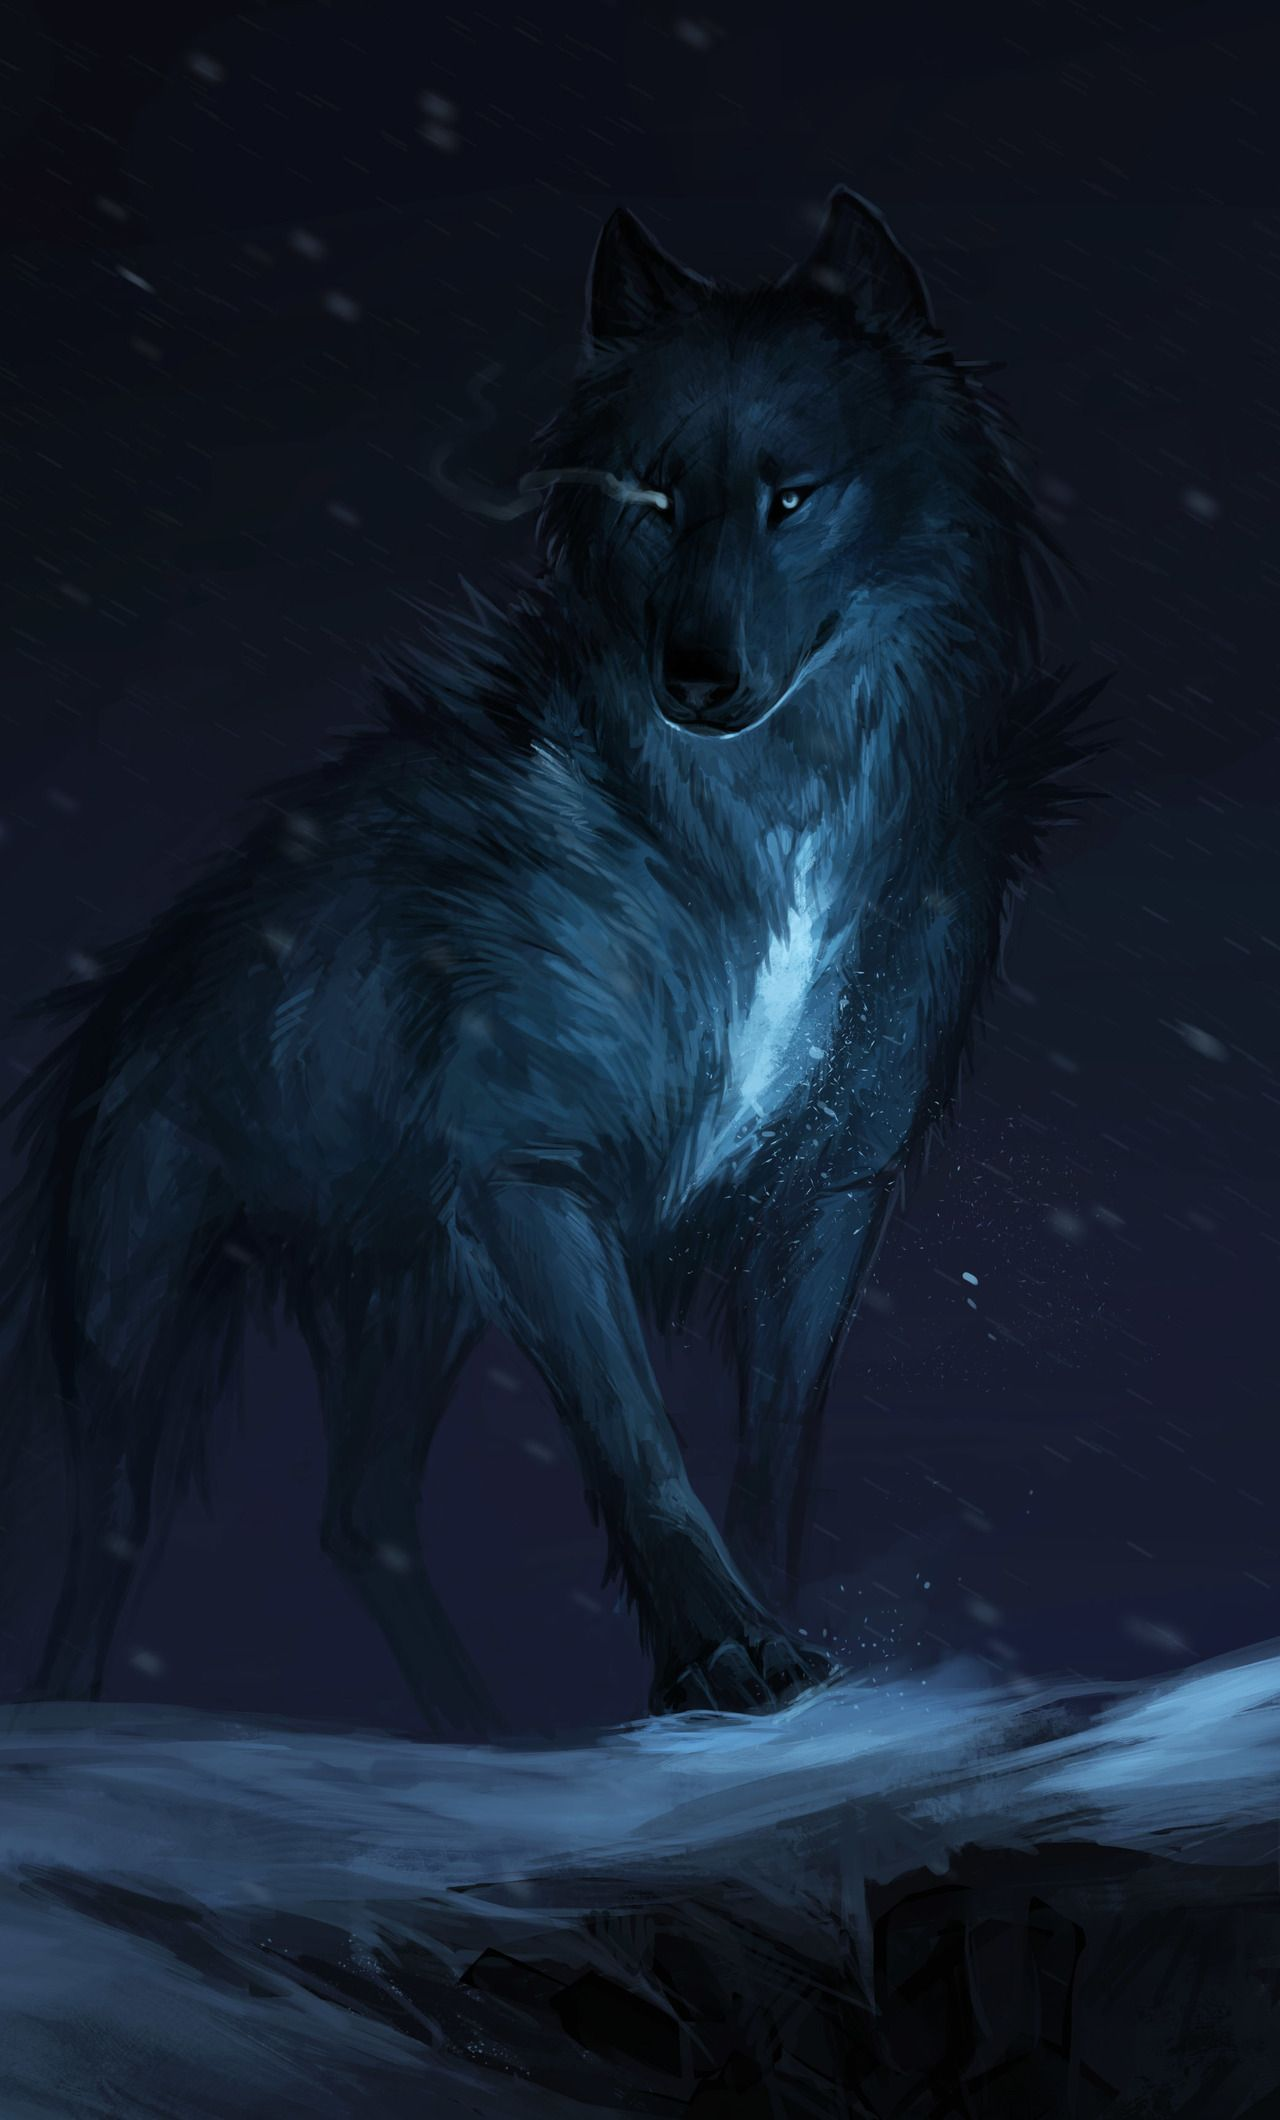 Wallpaper Iphone Hd Wolf Google Search Wolf Wallpaper Fantasy